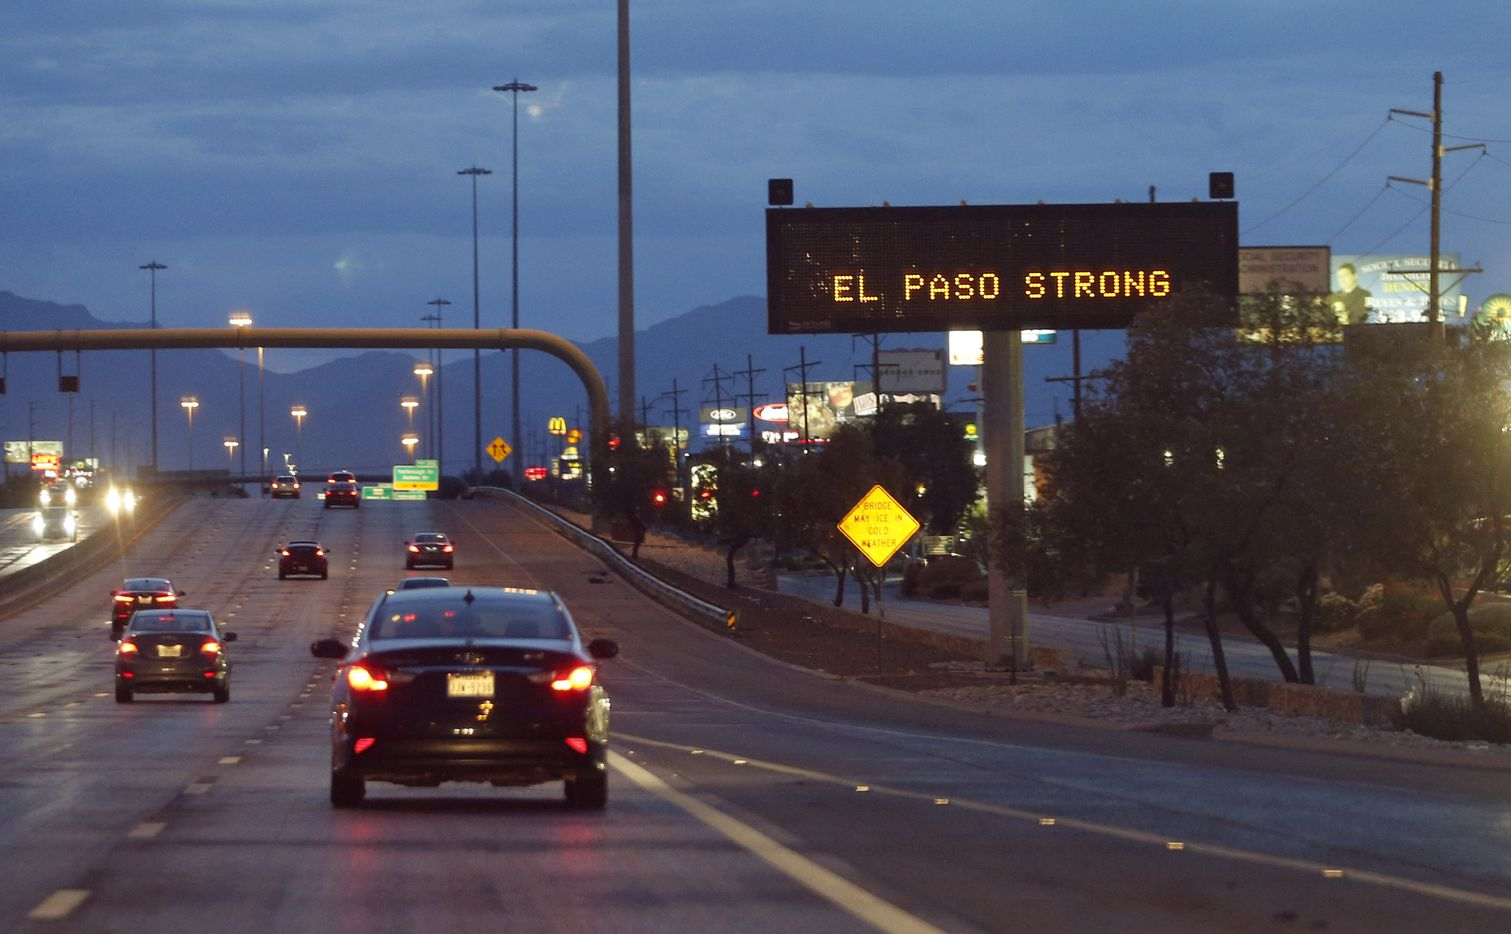 El Paso Strong sign along I-10 in El Paso, Texas on Sunday, August 4, 2019. 20 people were shot and killed and 26 more were wounded at a Walmart in El Paso on Saturday.